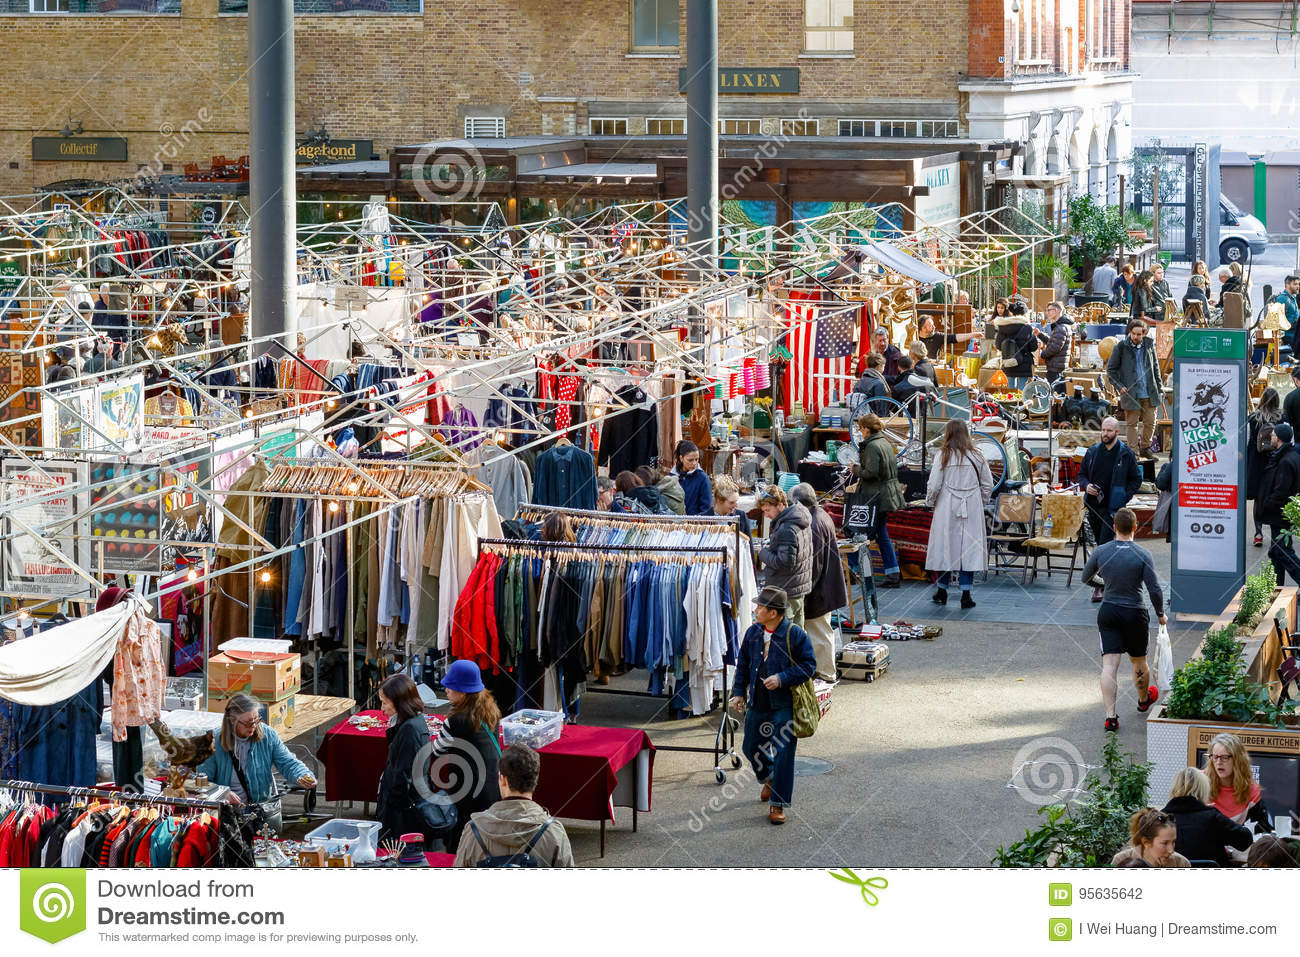 People shopping at Old Spitalfields Market in London